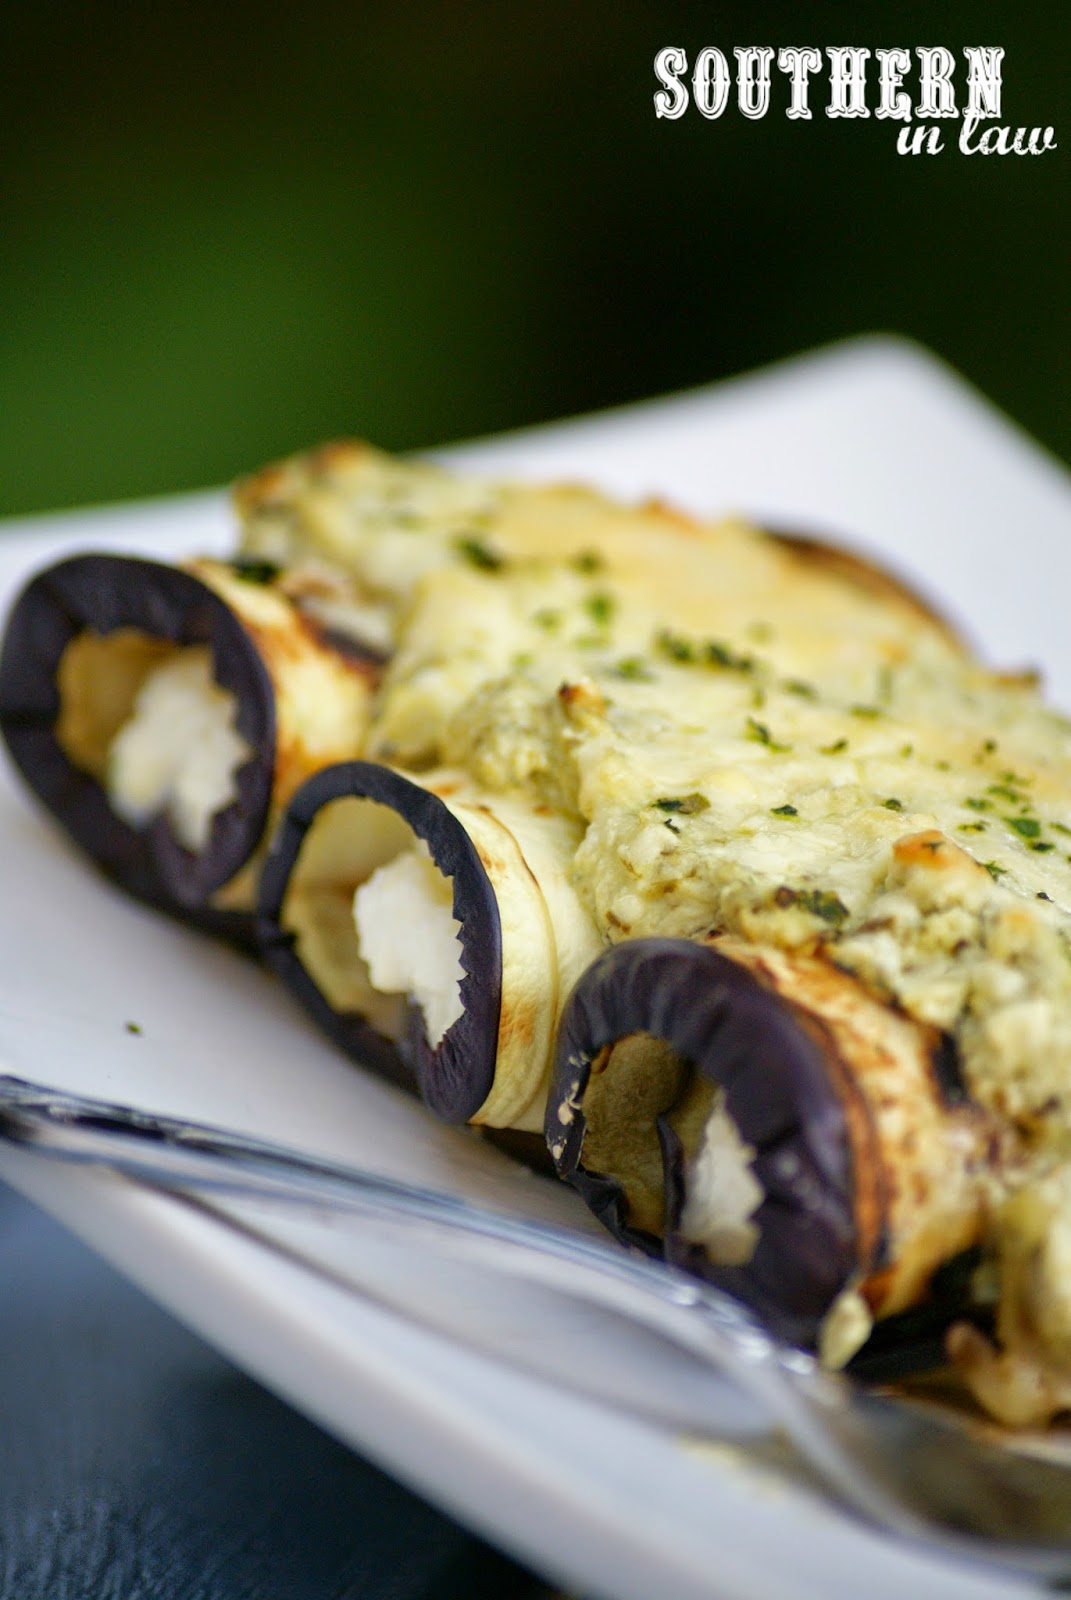 Low Fat Eggplant Involtini Recipe with Ricotta and Pesto - healthy, low fat, low carb, gluten free, egg free